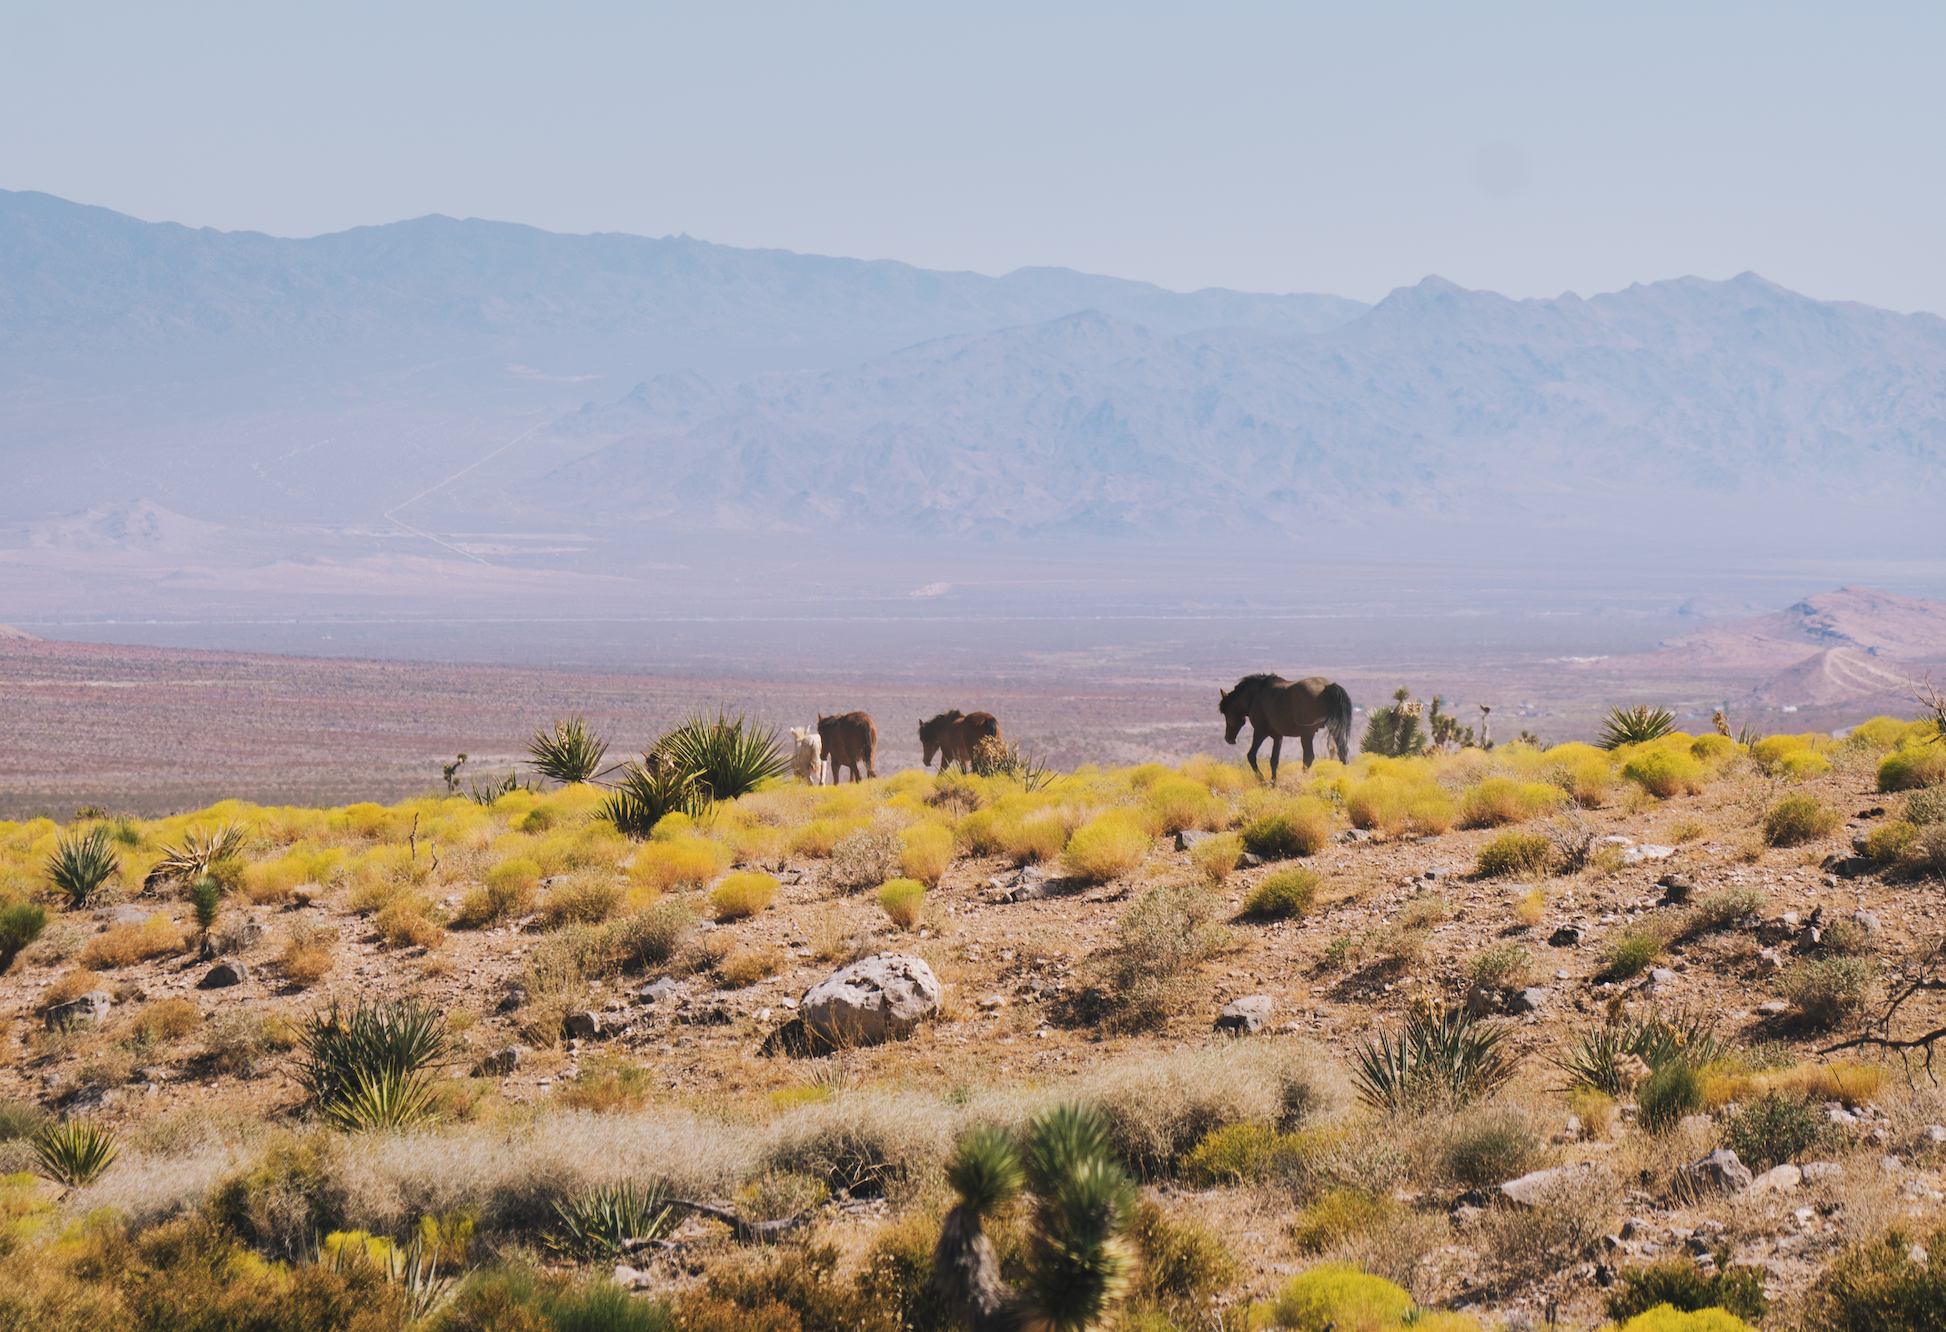 On this Las Vegas day trip, you can ride ATV's and see wild horses